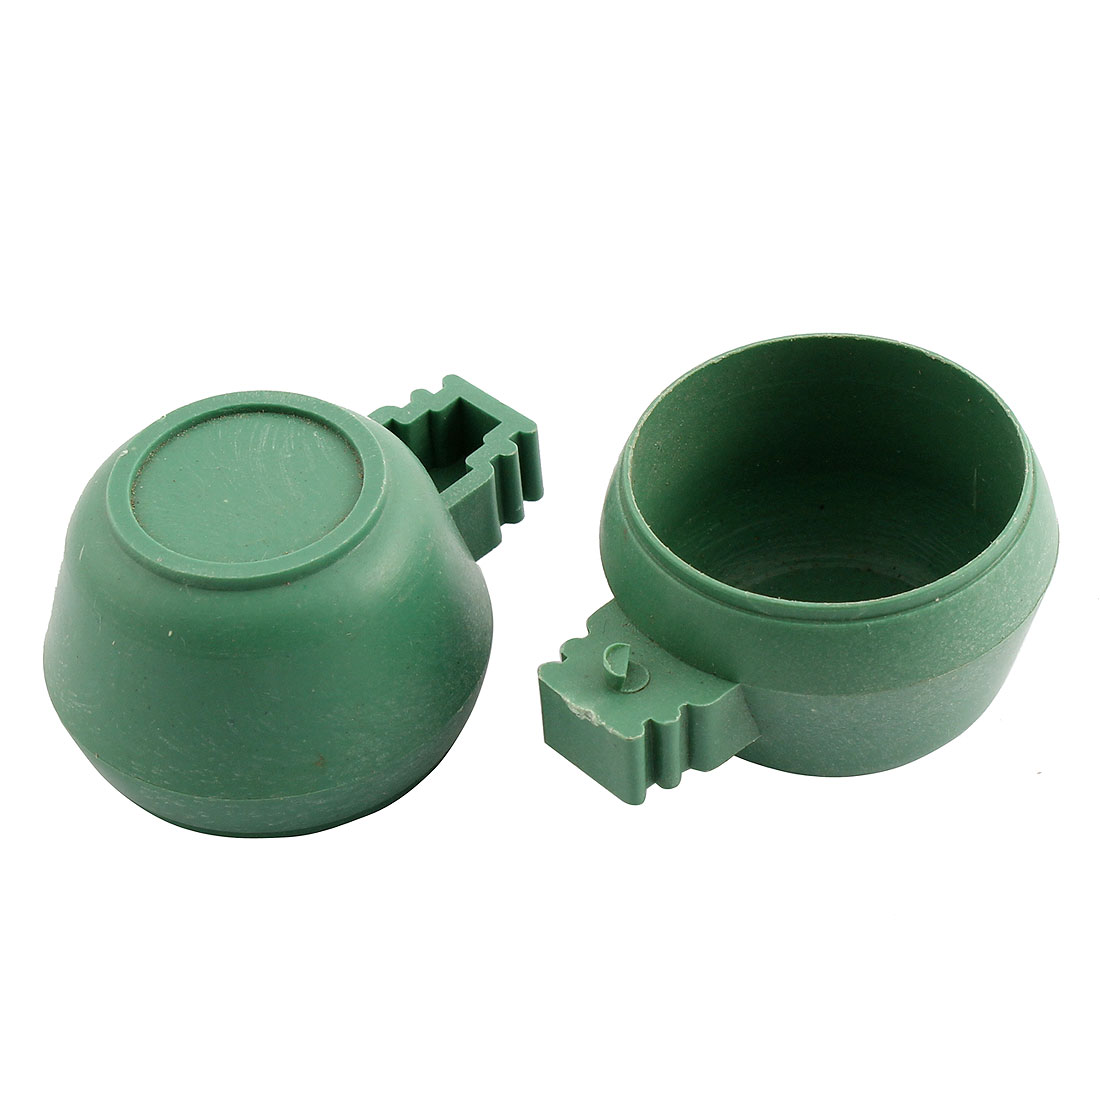 Plastic 35mm Dia Hamster Parrot Bird Food Water Feeder Cup Bowl Holder 2 Pcs Green